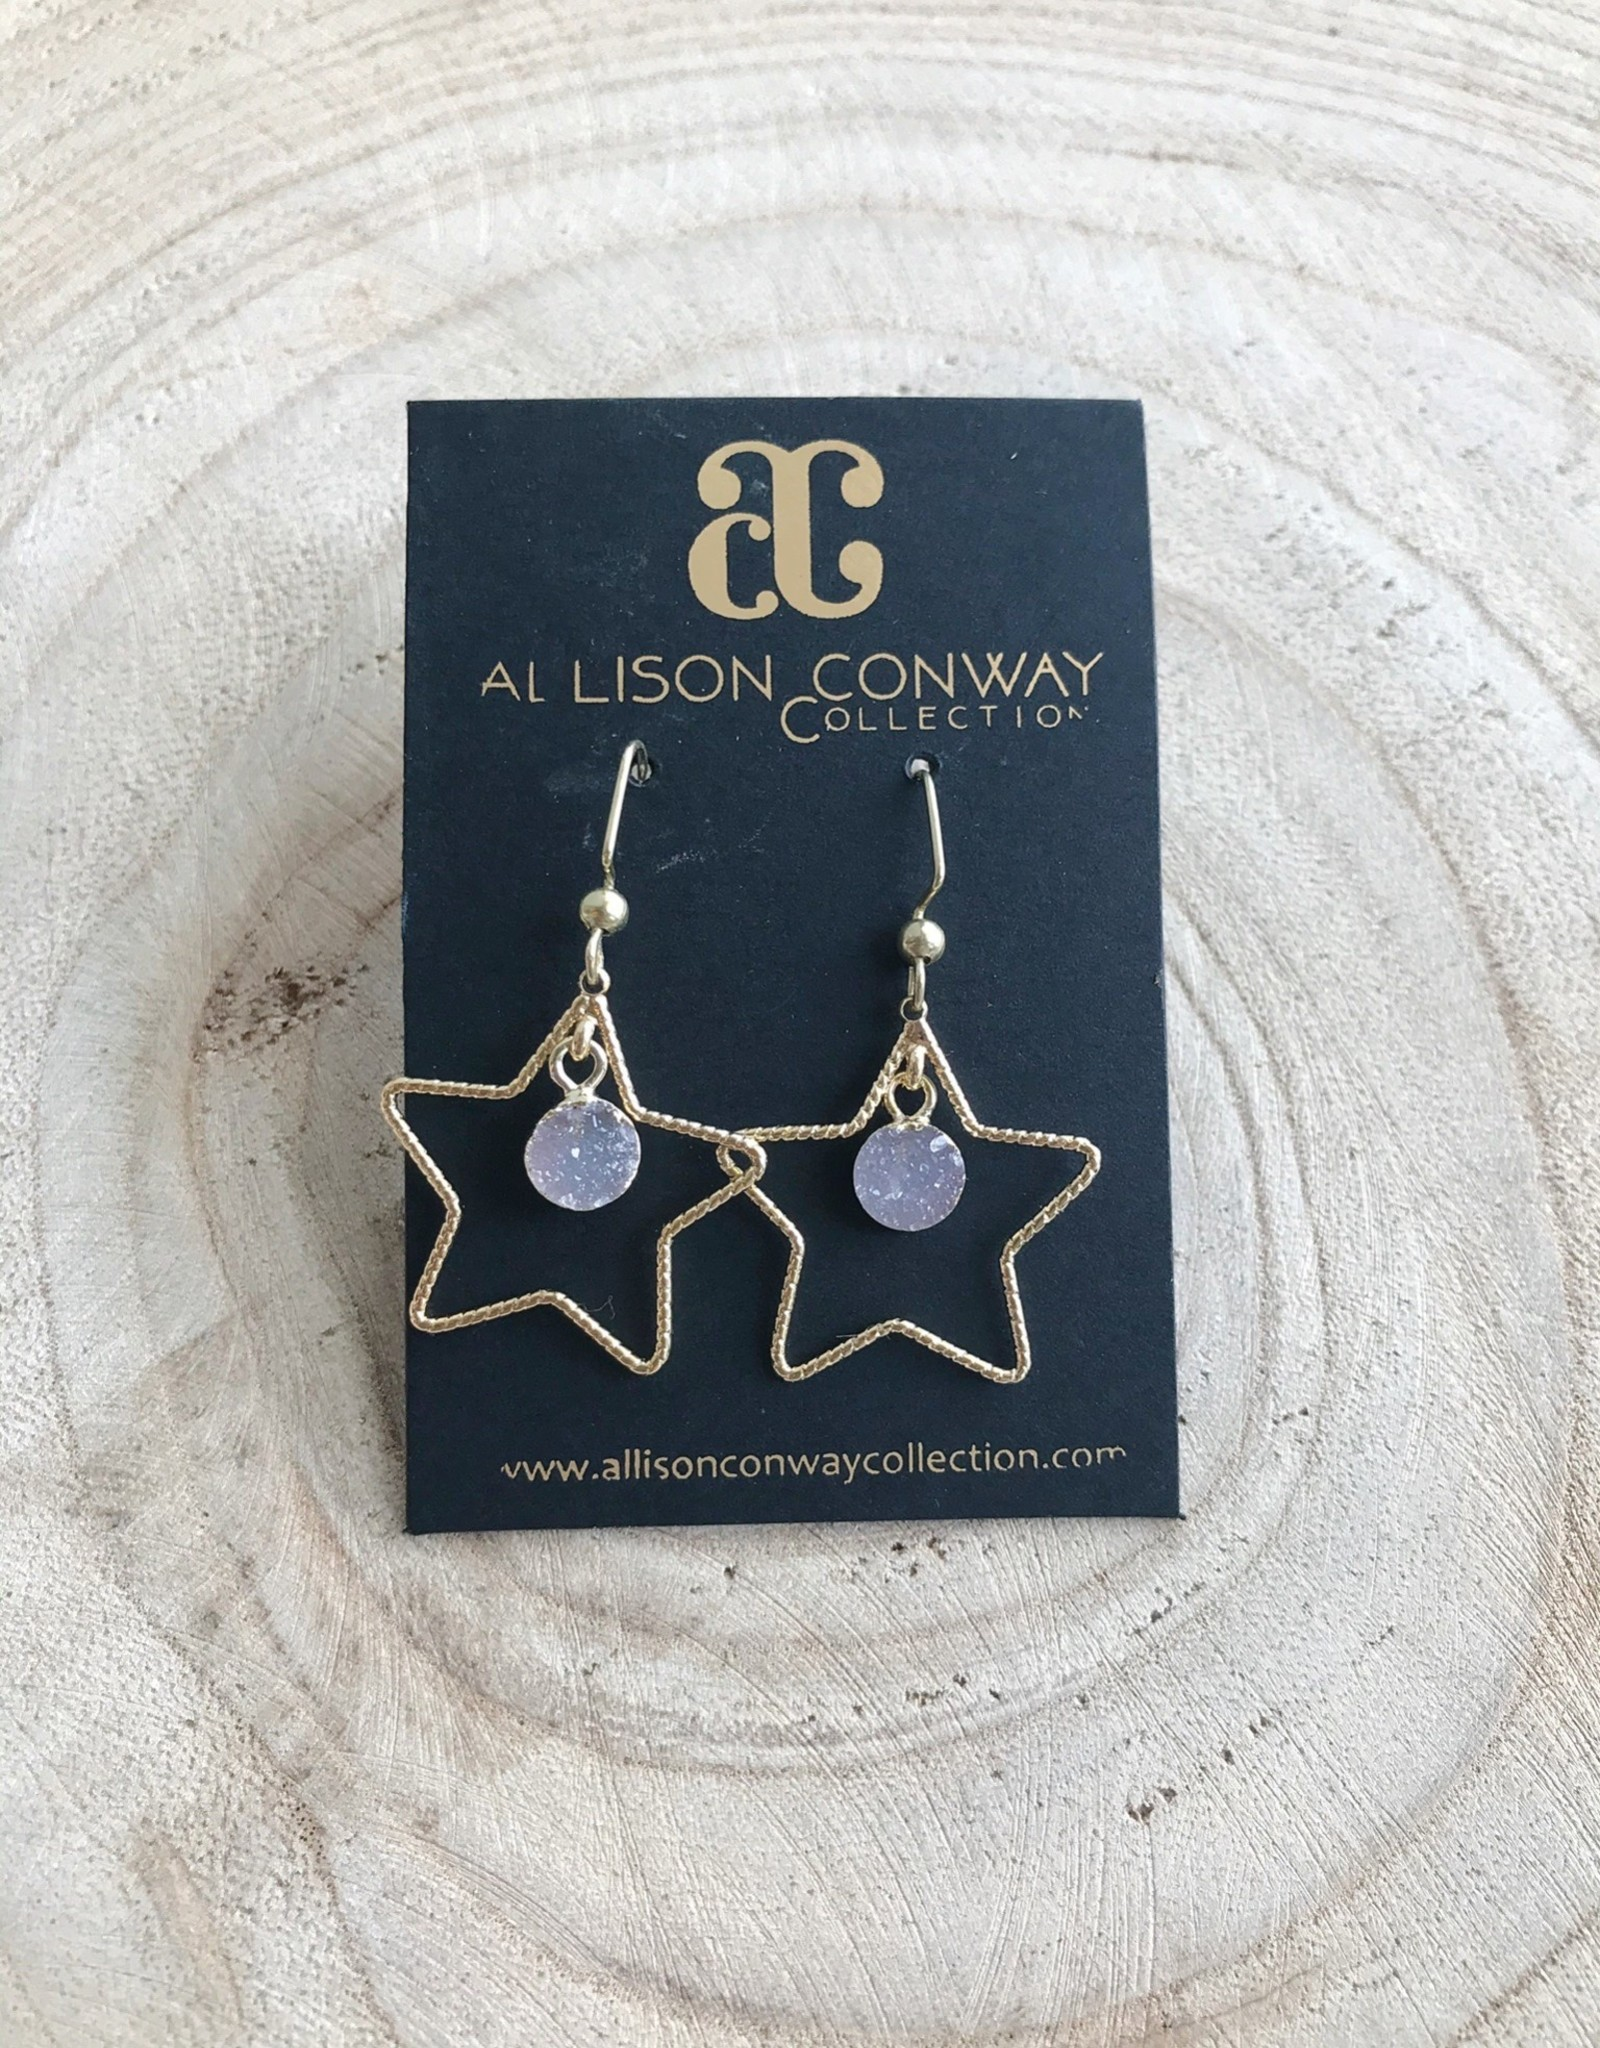 Allison Conway AC Small Druzy Star Earrings